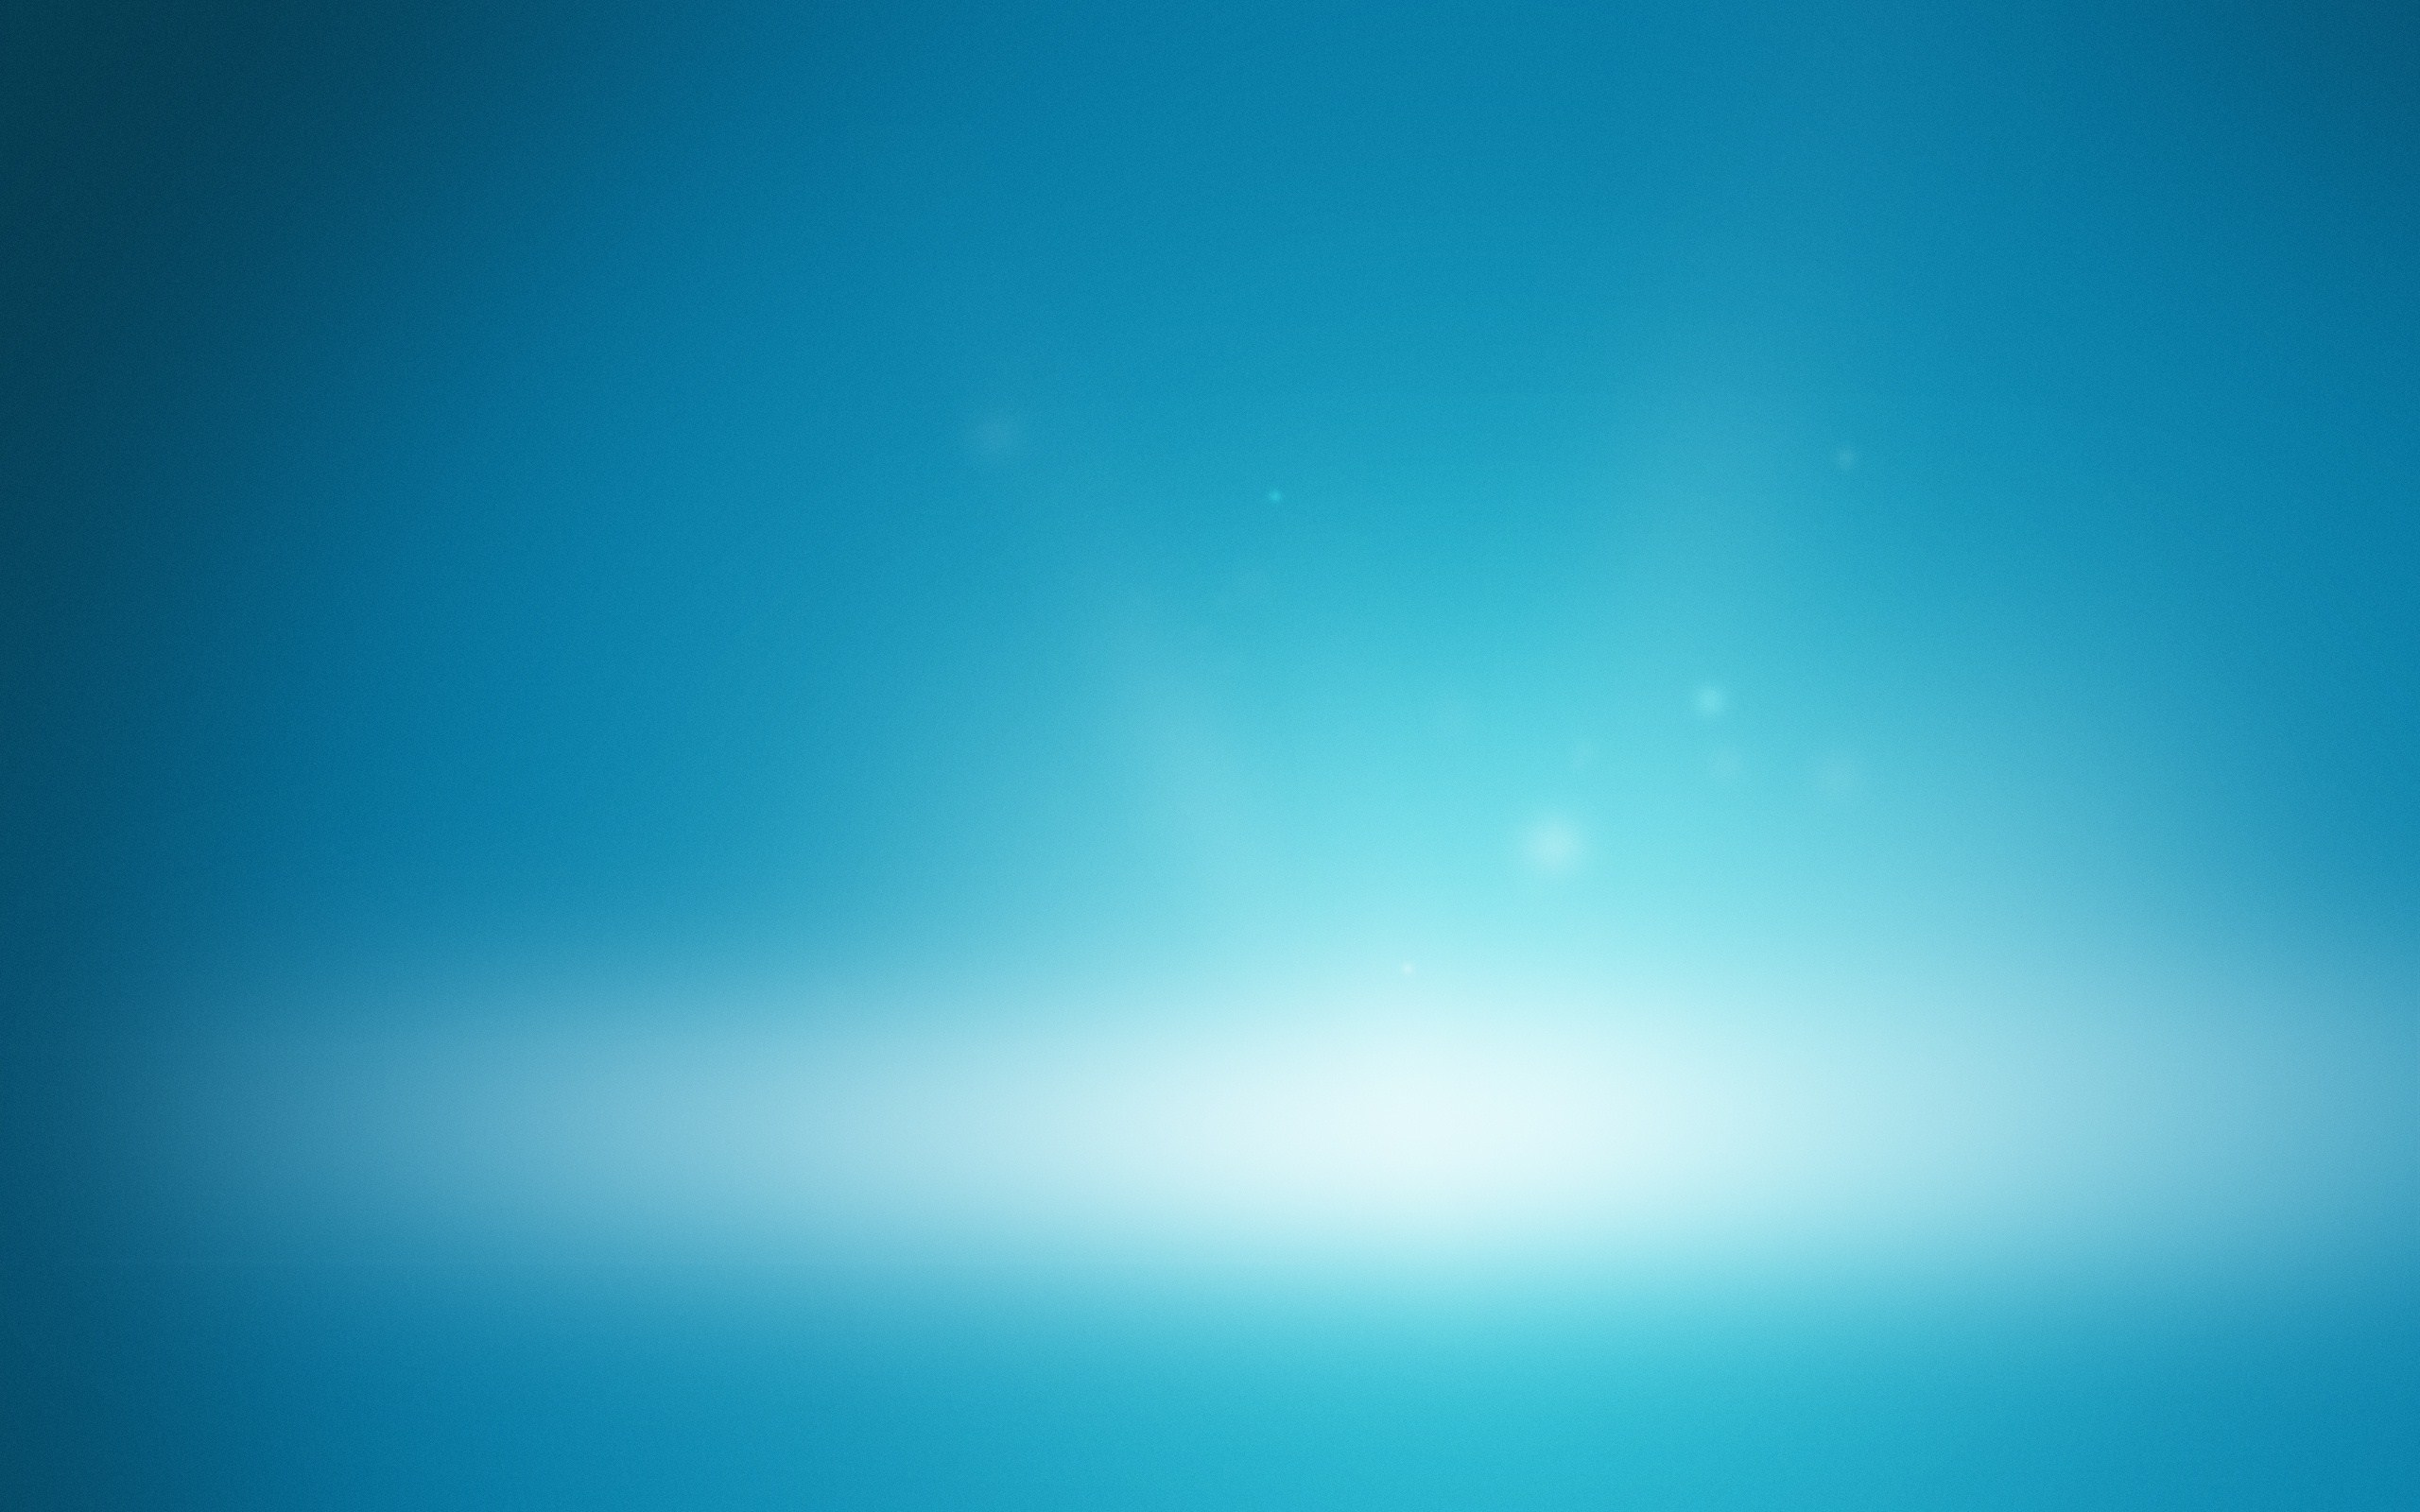 Light Wallpapers Backgrounds Hd 33